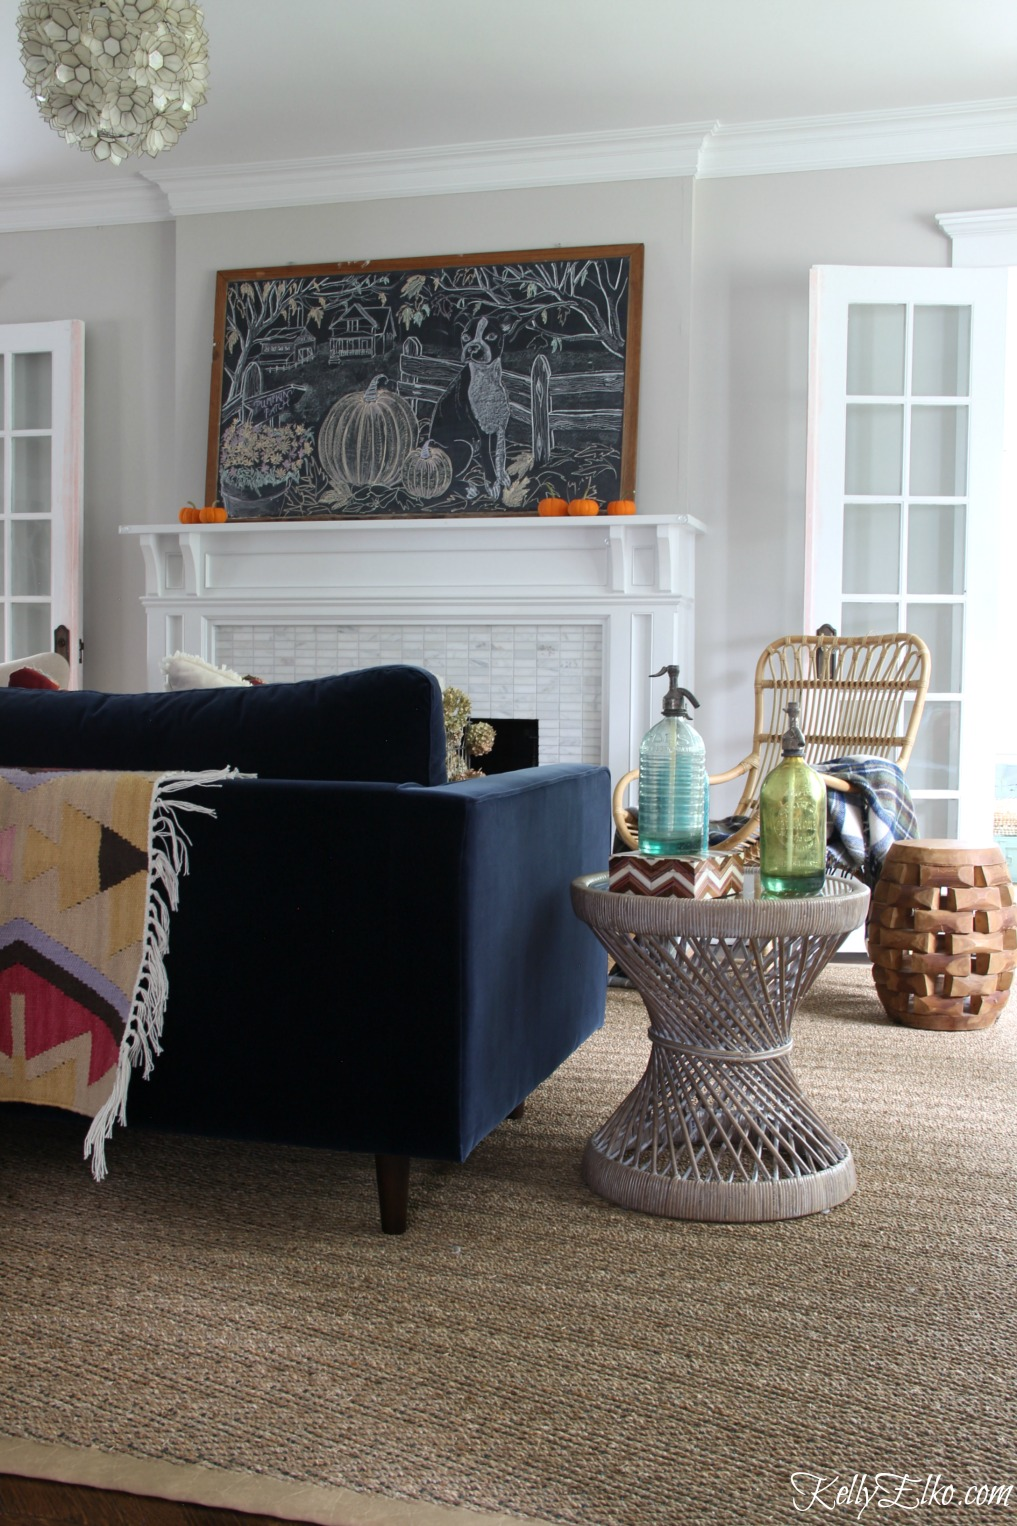 Tour this fall living room that is the perfect mix of old and new. Love the giant chalkboard art on the mantel kellyelko.com